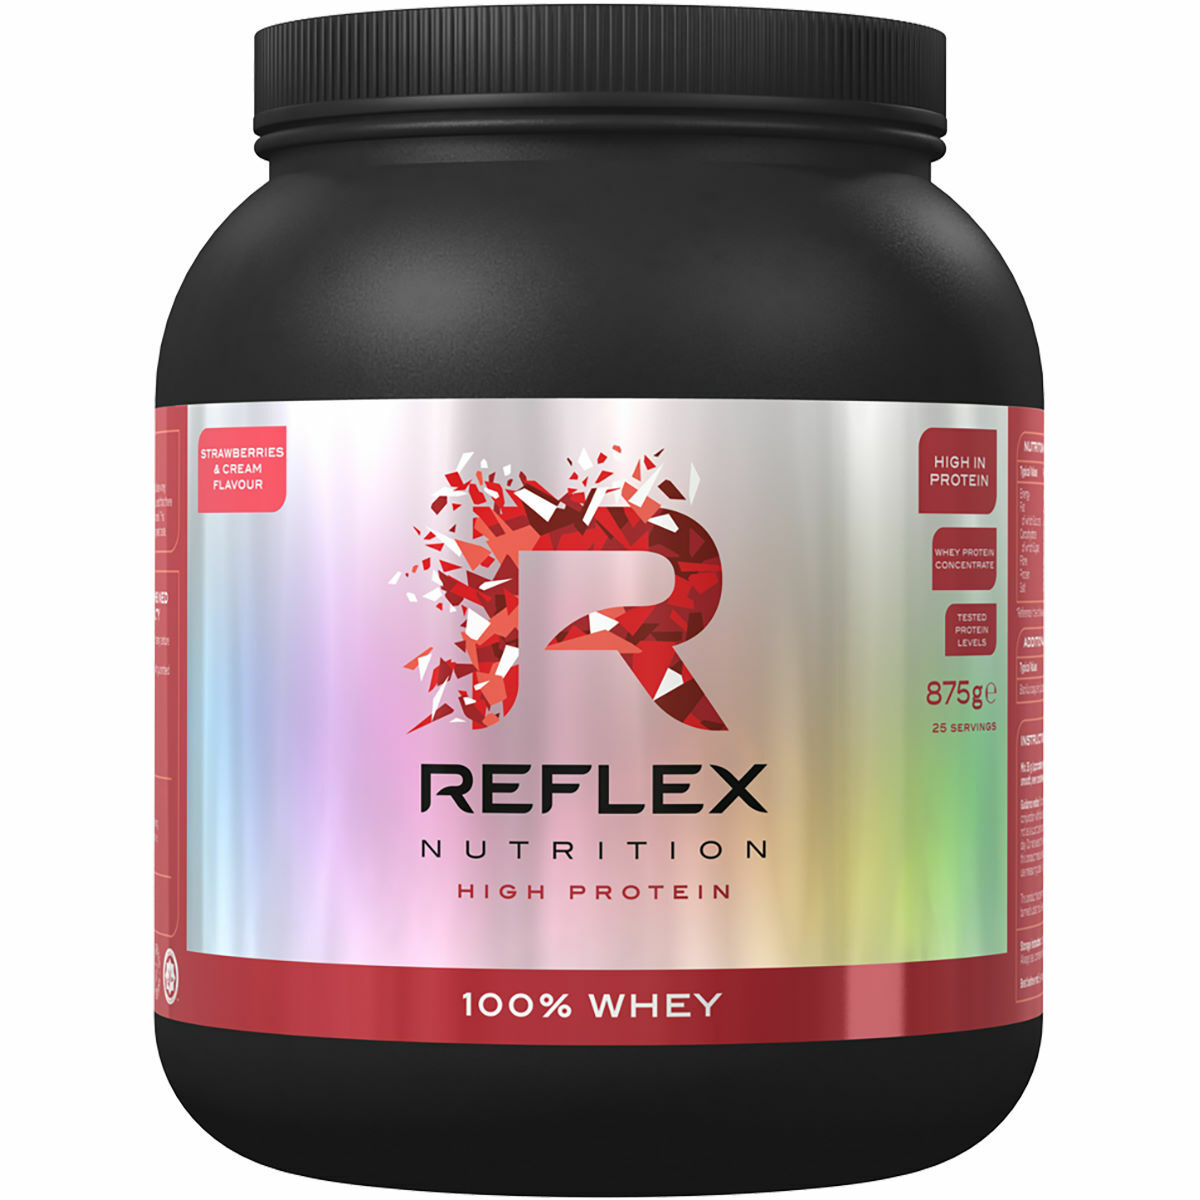 Reflex 100% Whey Protein (2kg)  - FREE Postage - Price for Chocolate Peanut Butter only